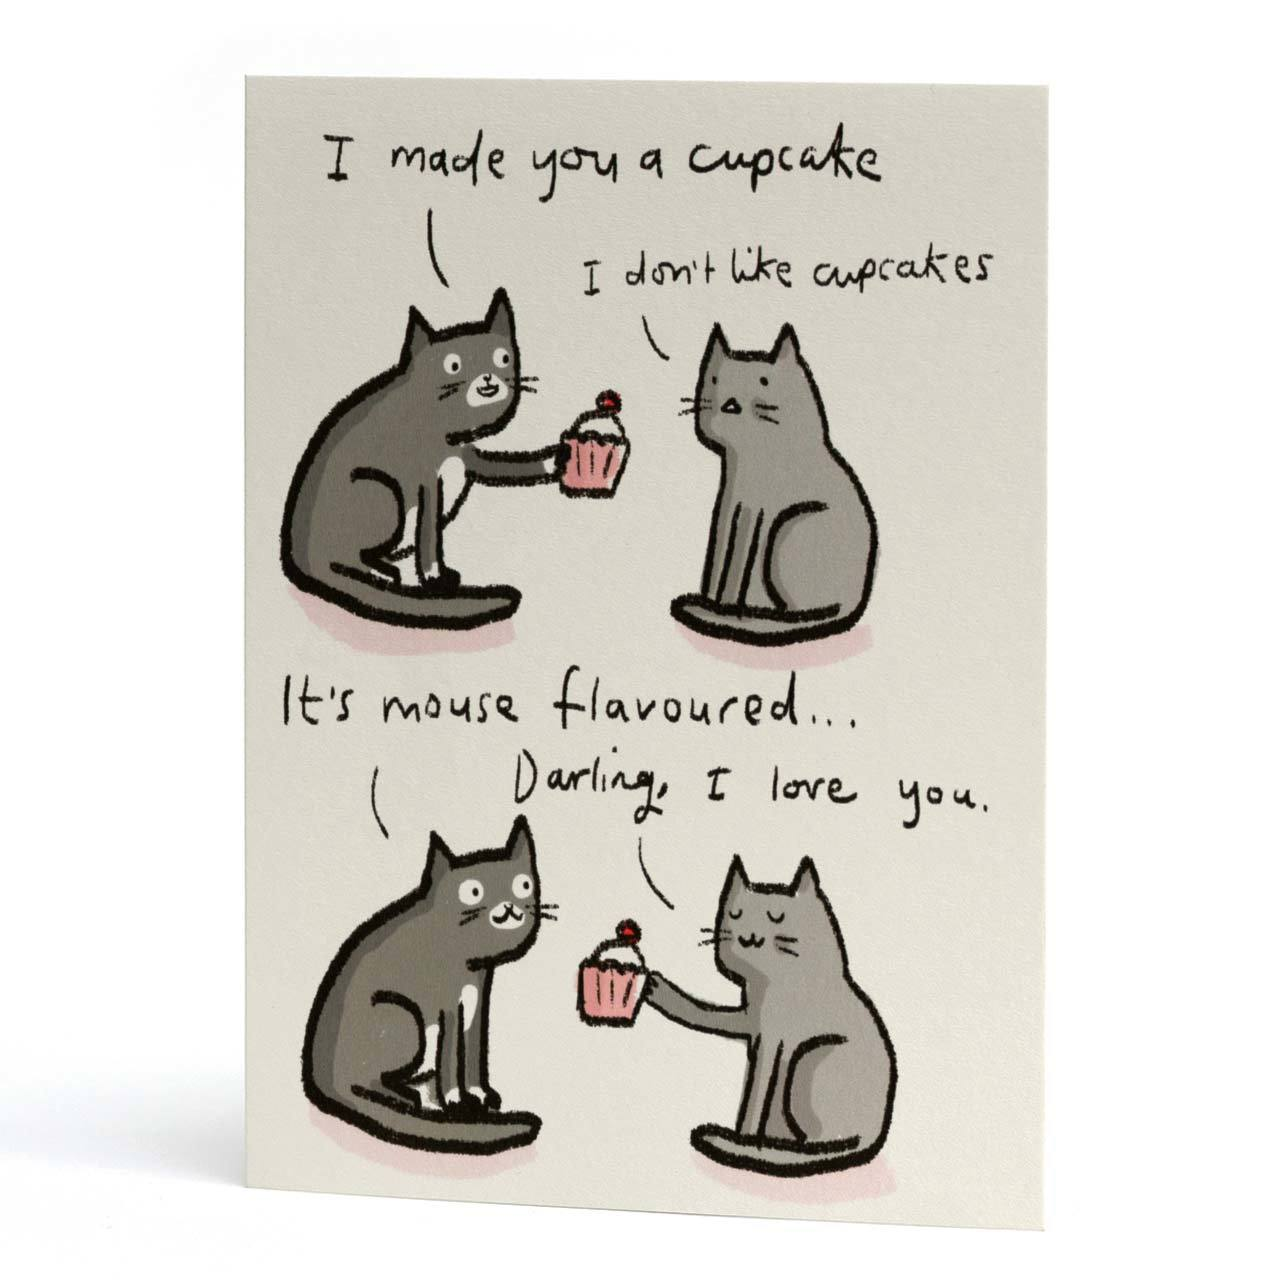 Darling I Love You Greeting Card